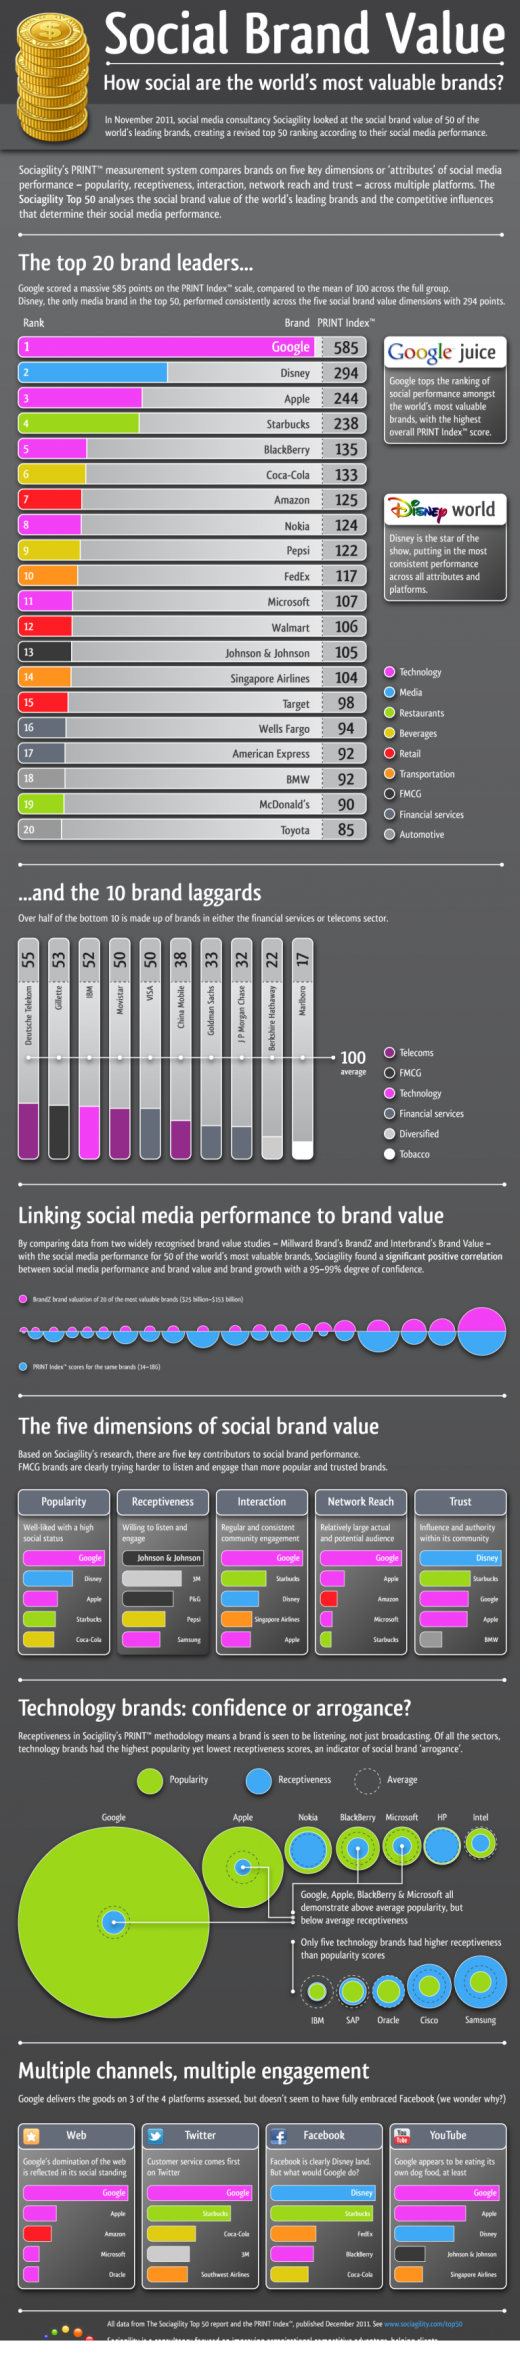 Sociagility Top 501 520x2373 How the worlds 50 most valuable brands are faring in social media [Infographic]